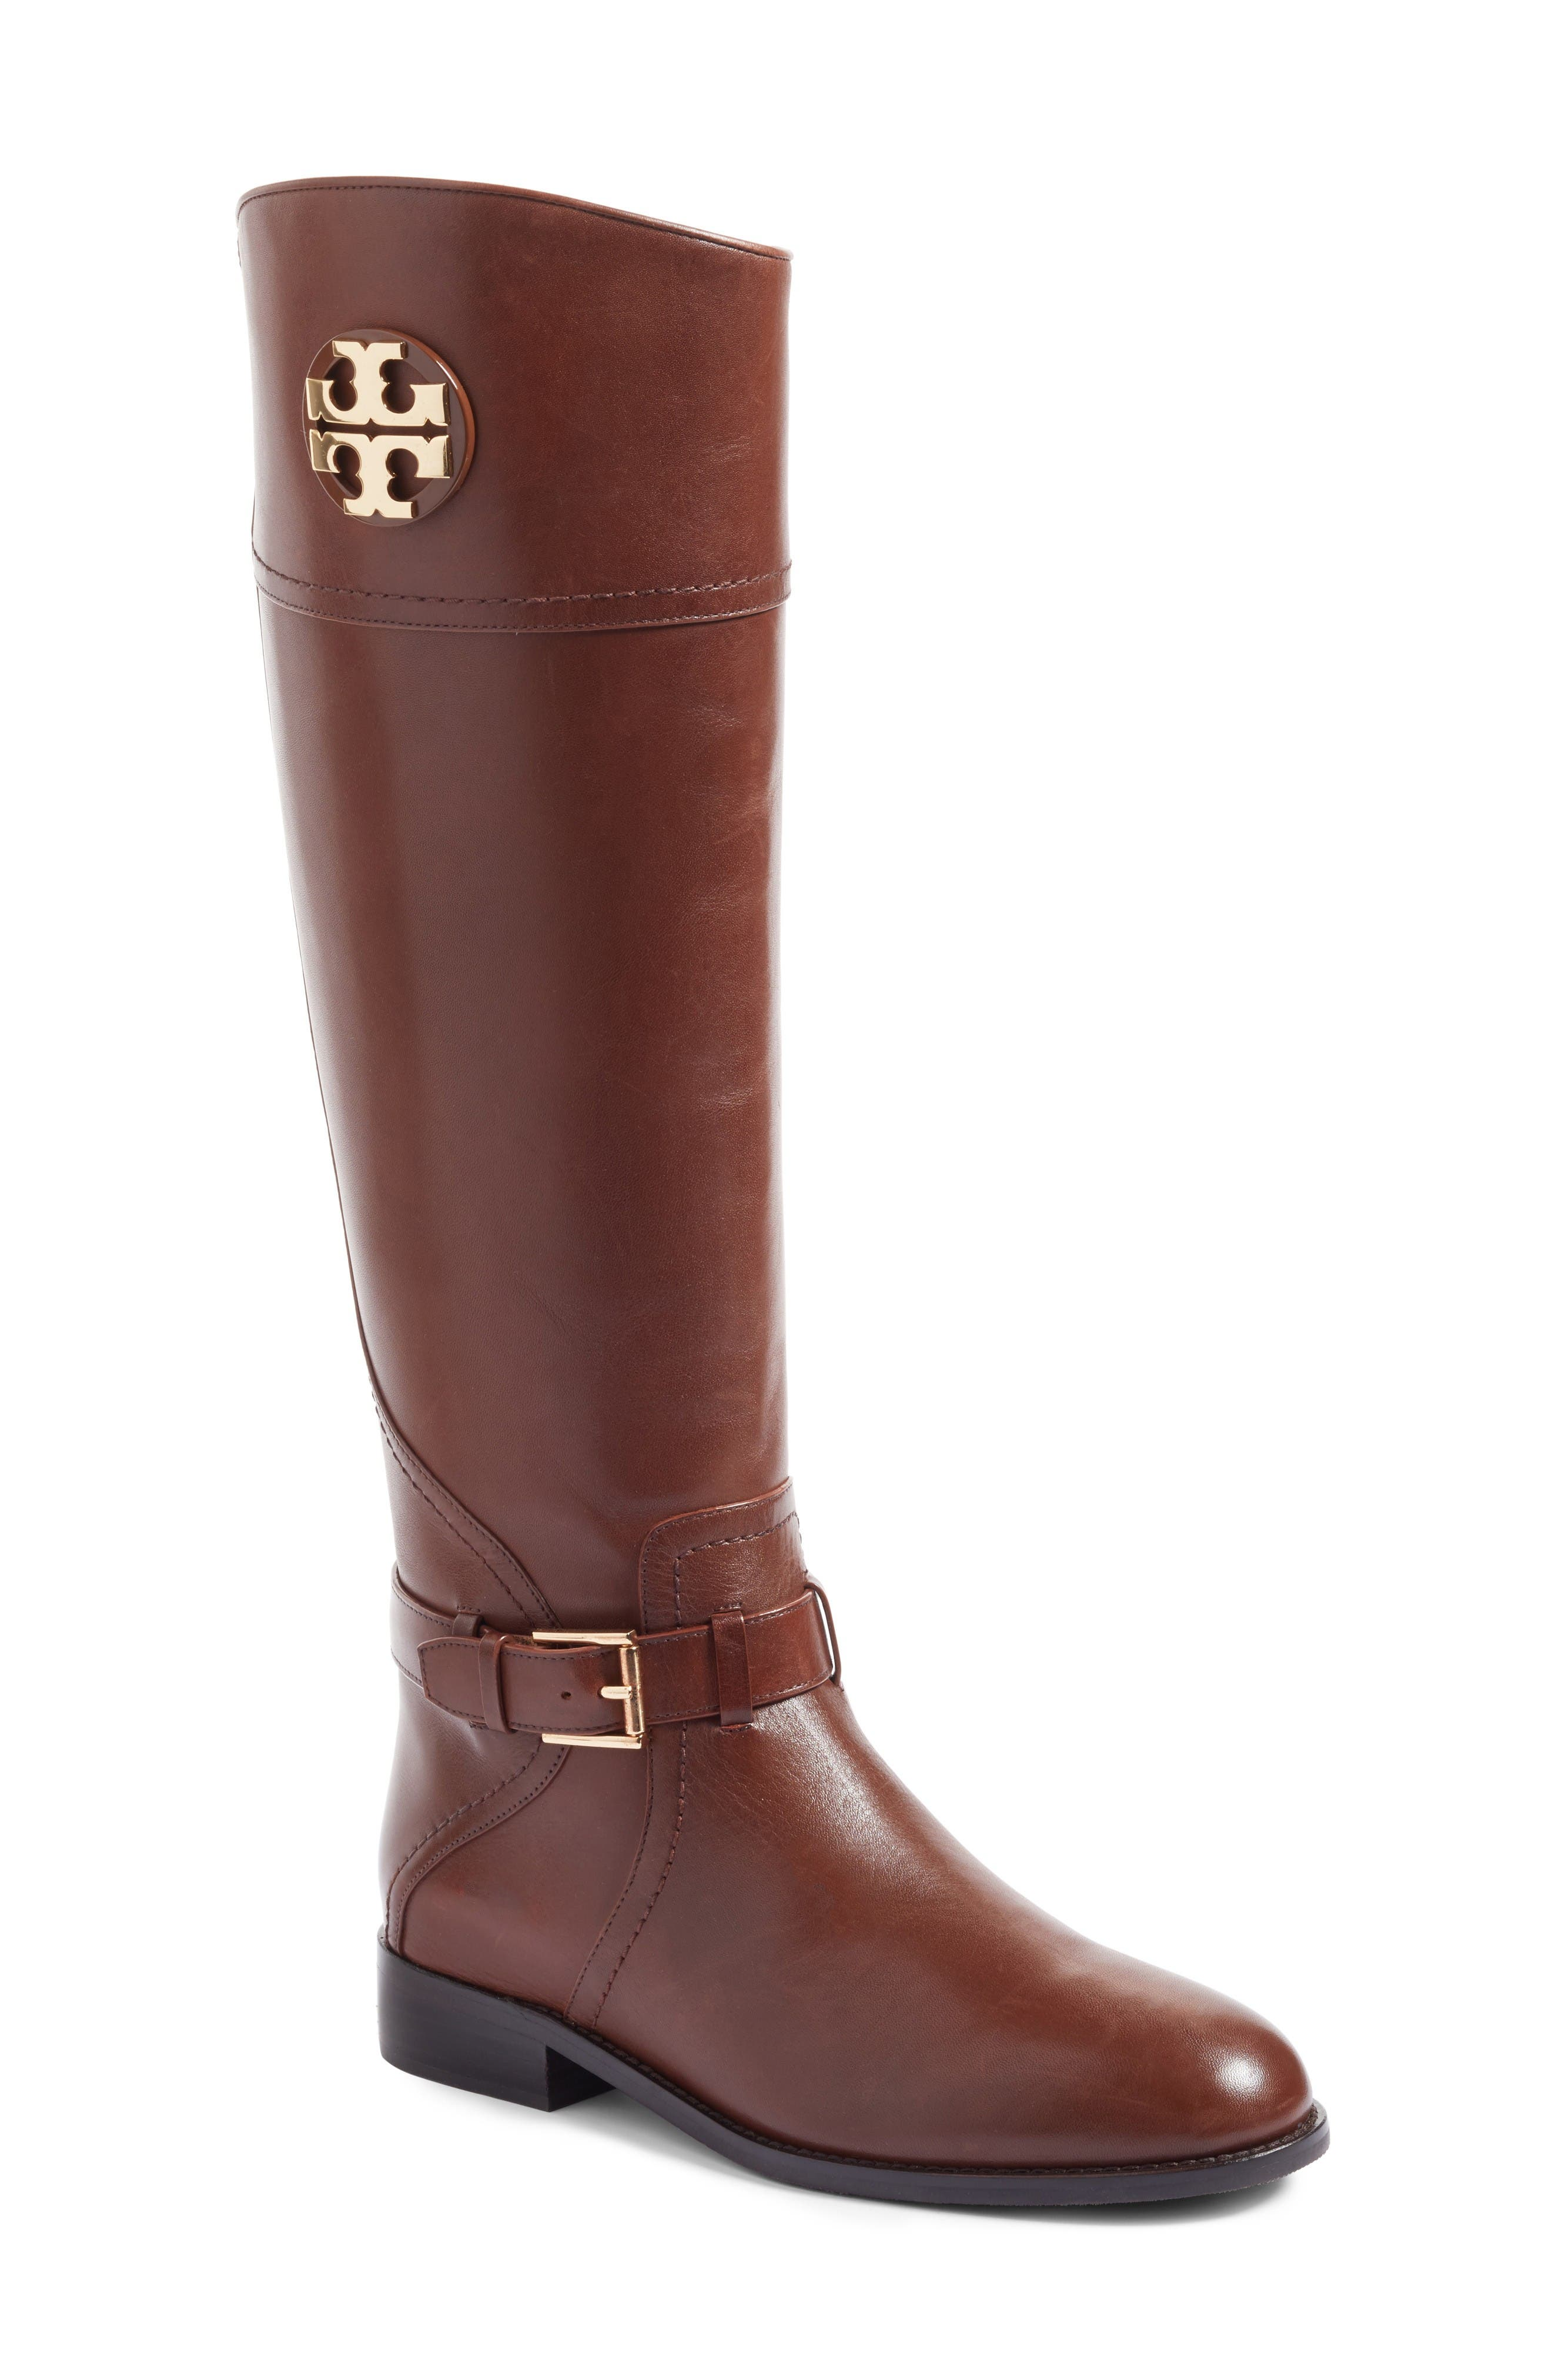 Main Image - Tory Burch Adeline Boot (Women) (Regular & Wide Calf)